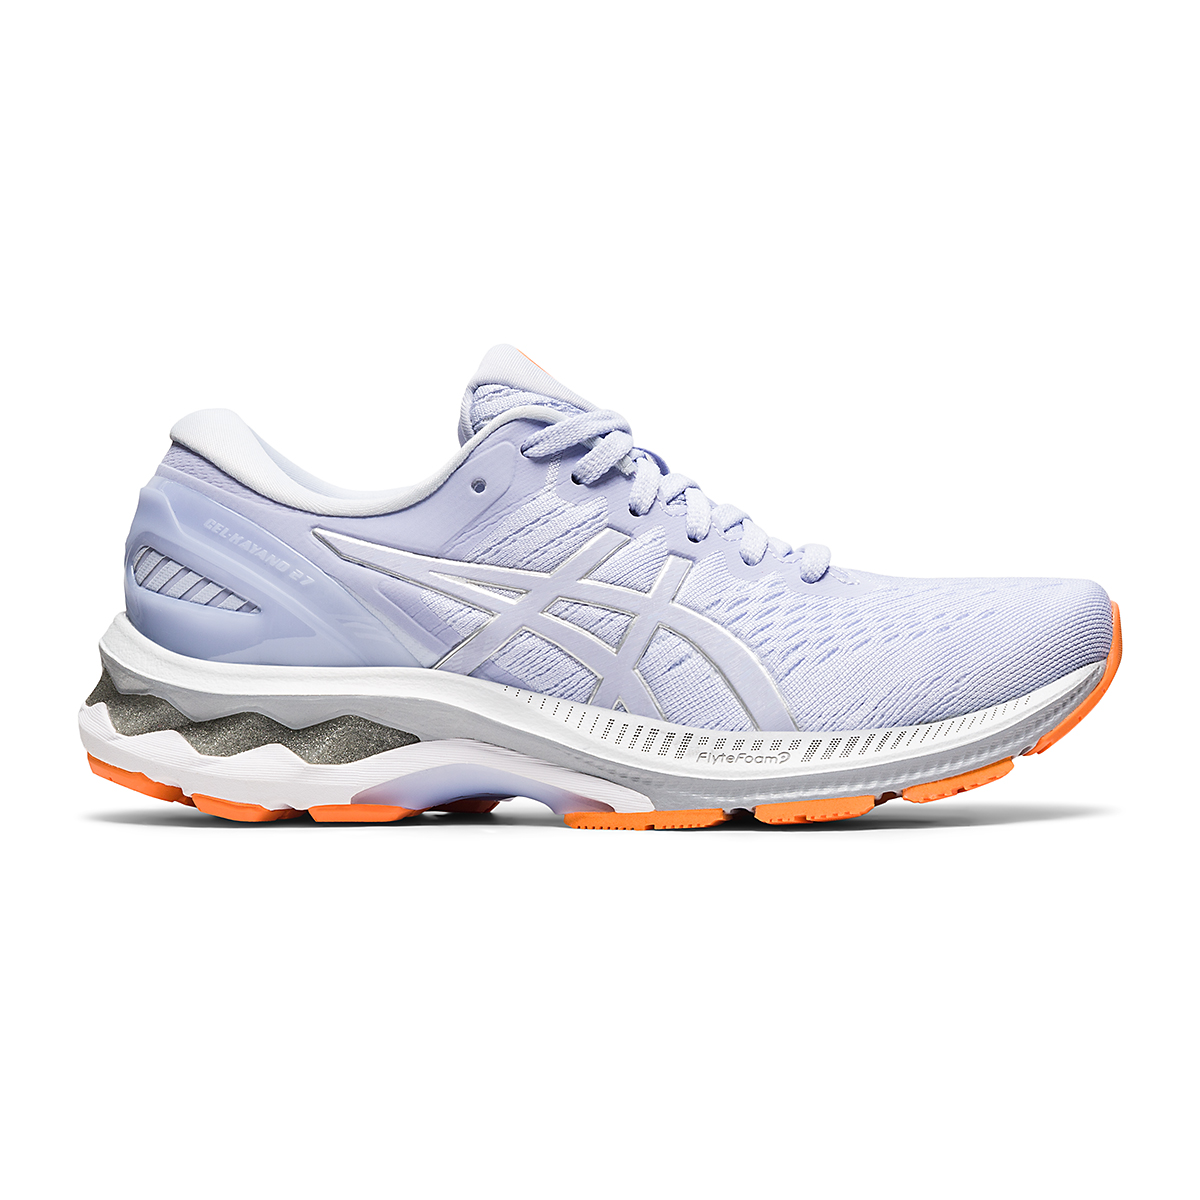 Women's Asics GEL-Kayano 27 Running Shoe - Color: Lilac Opal/Pure Silver - Size: 6 - Width: Regular, Lilac Opal/Pure Silver, large, image 1